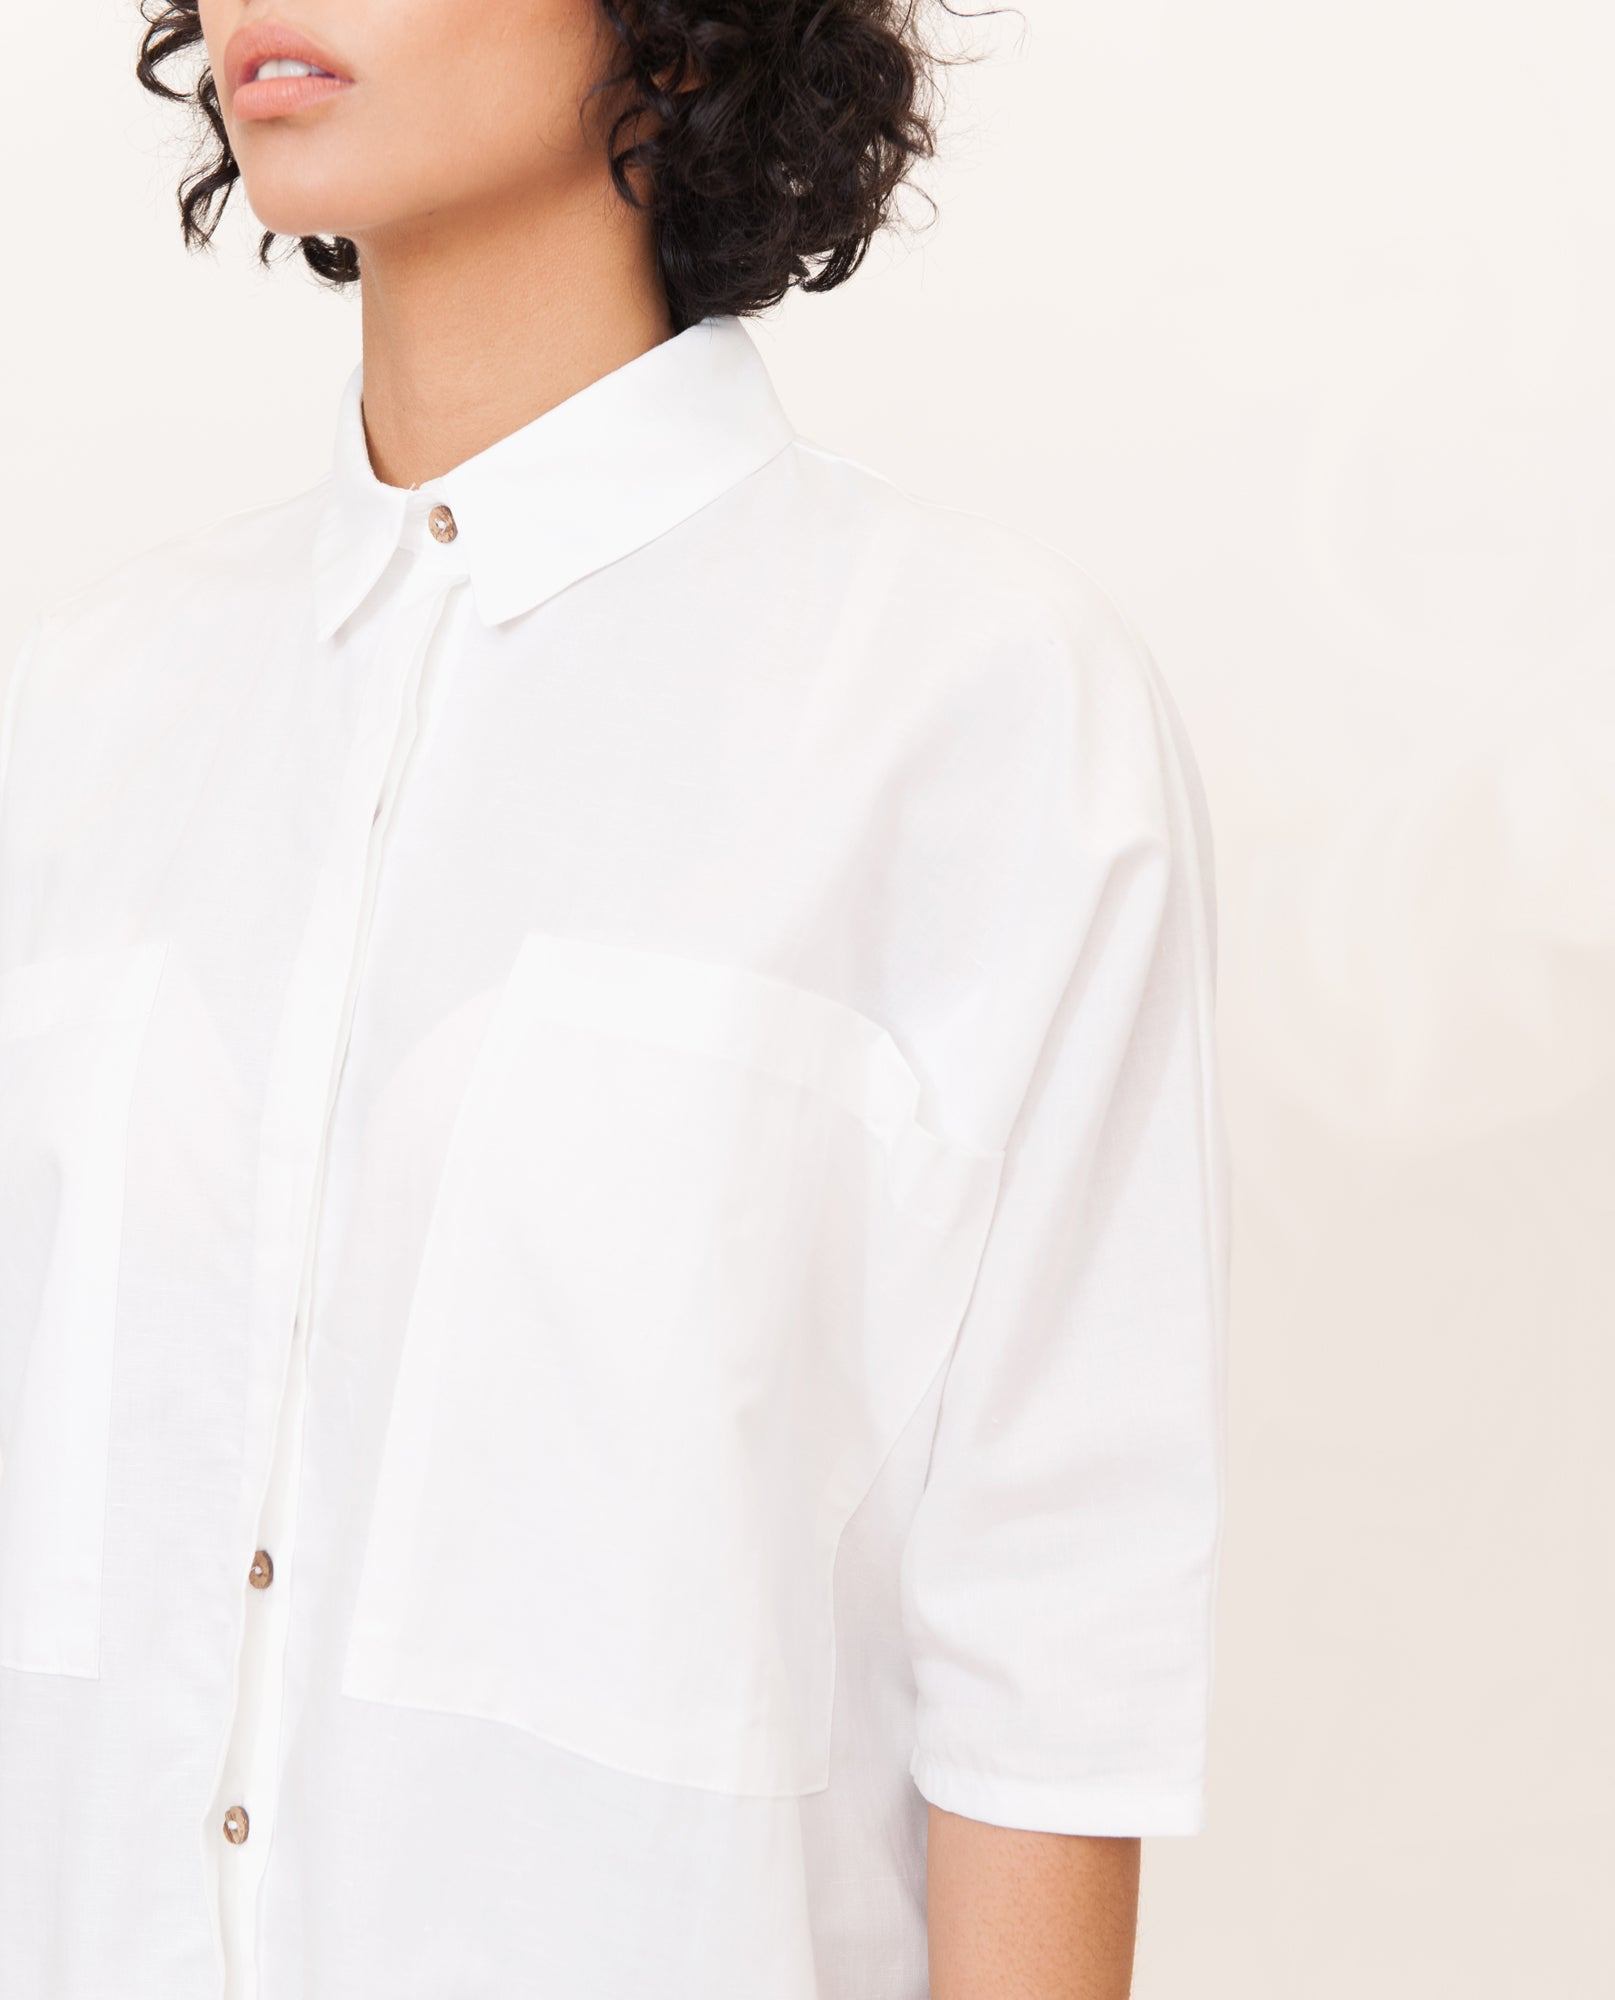 YVONNE-MAY Linen Shirt In White